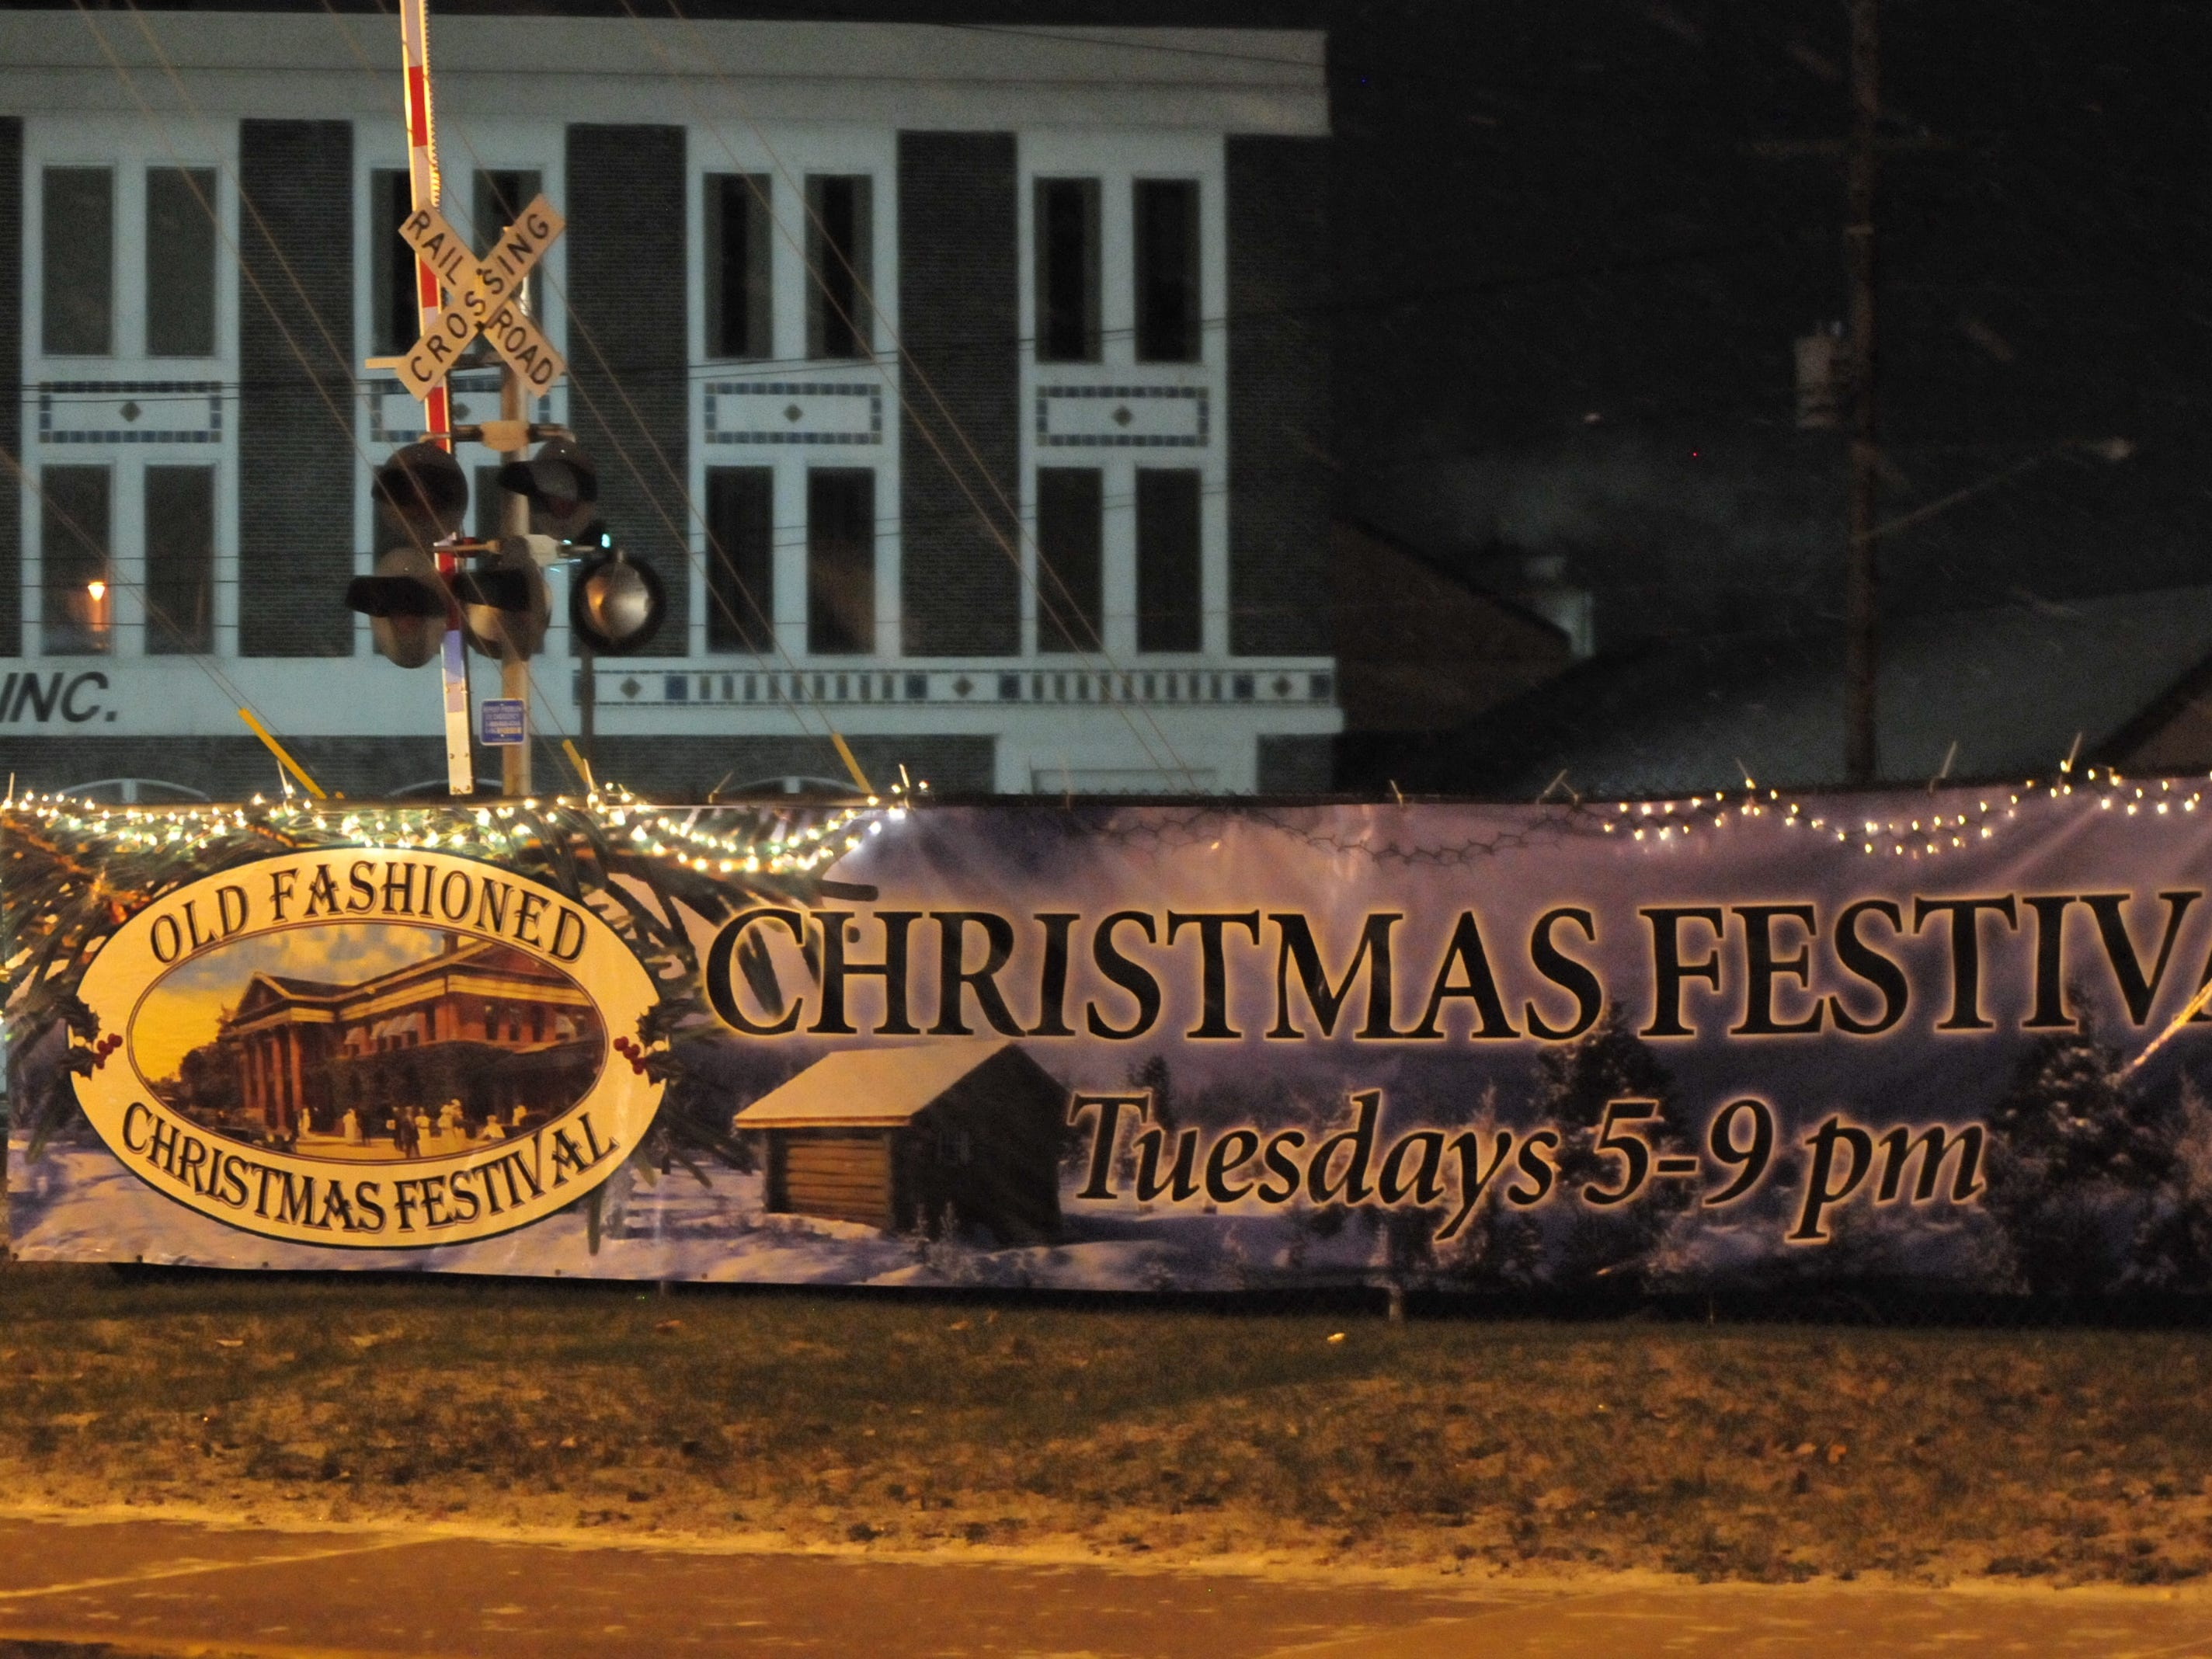 Lights and a banner advertise the Old-Fashioned Christmas Festival that began Tuesday and continues Dec. 4 and 11 in the Depot District.